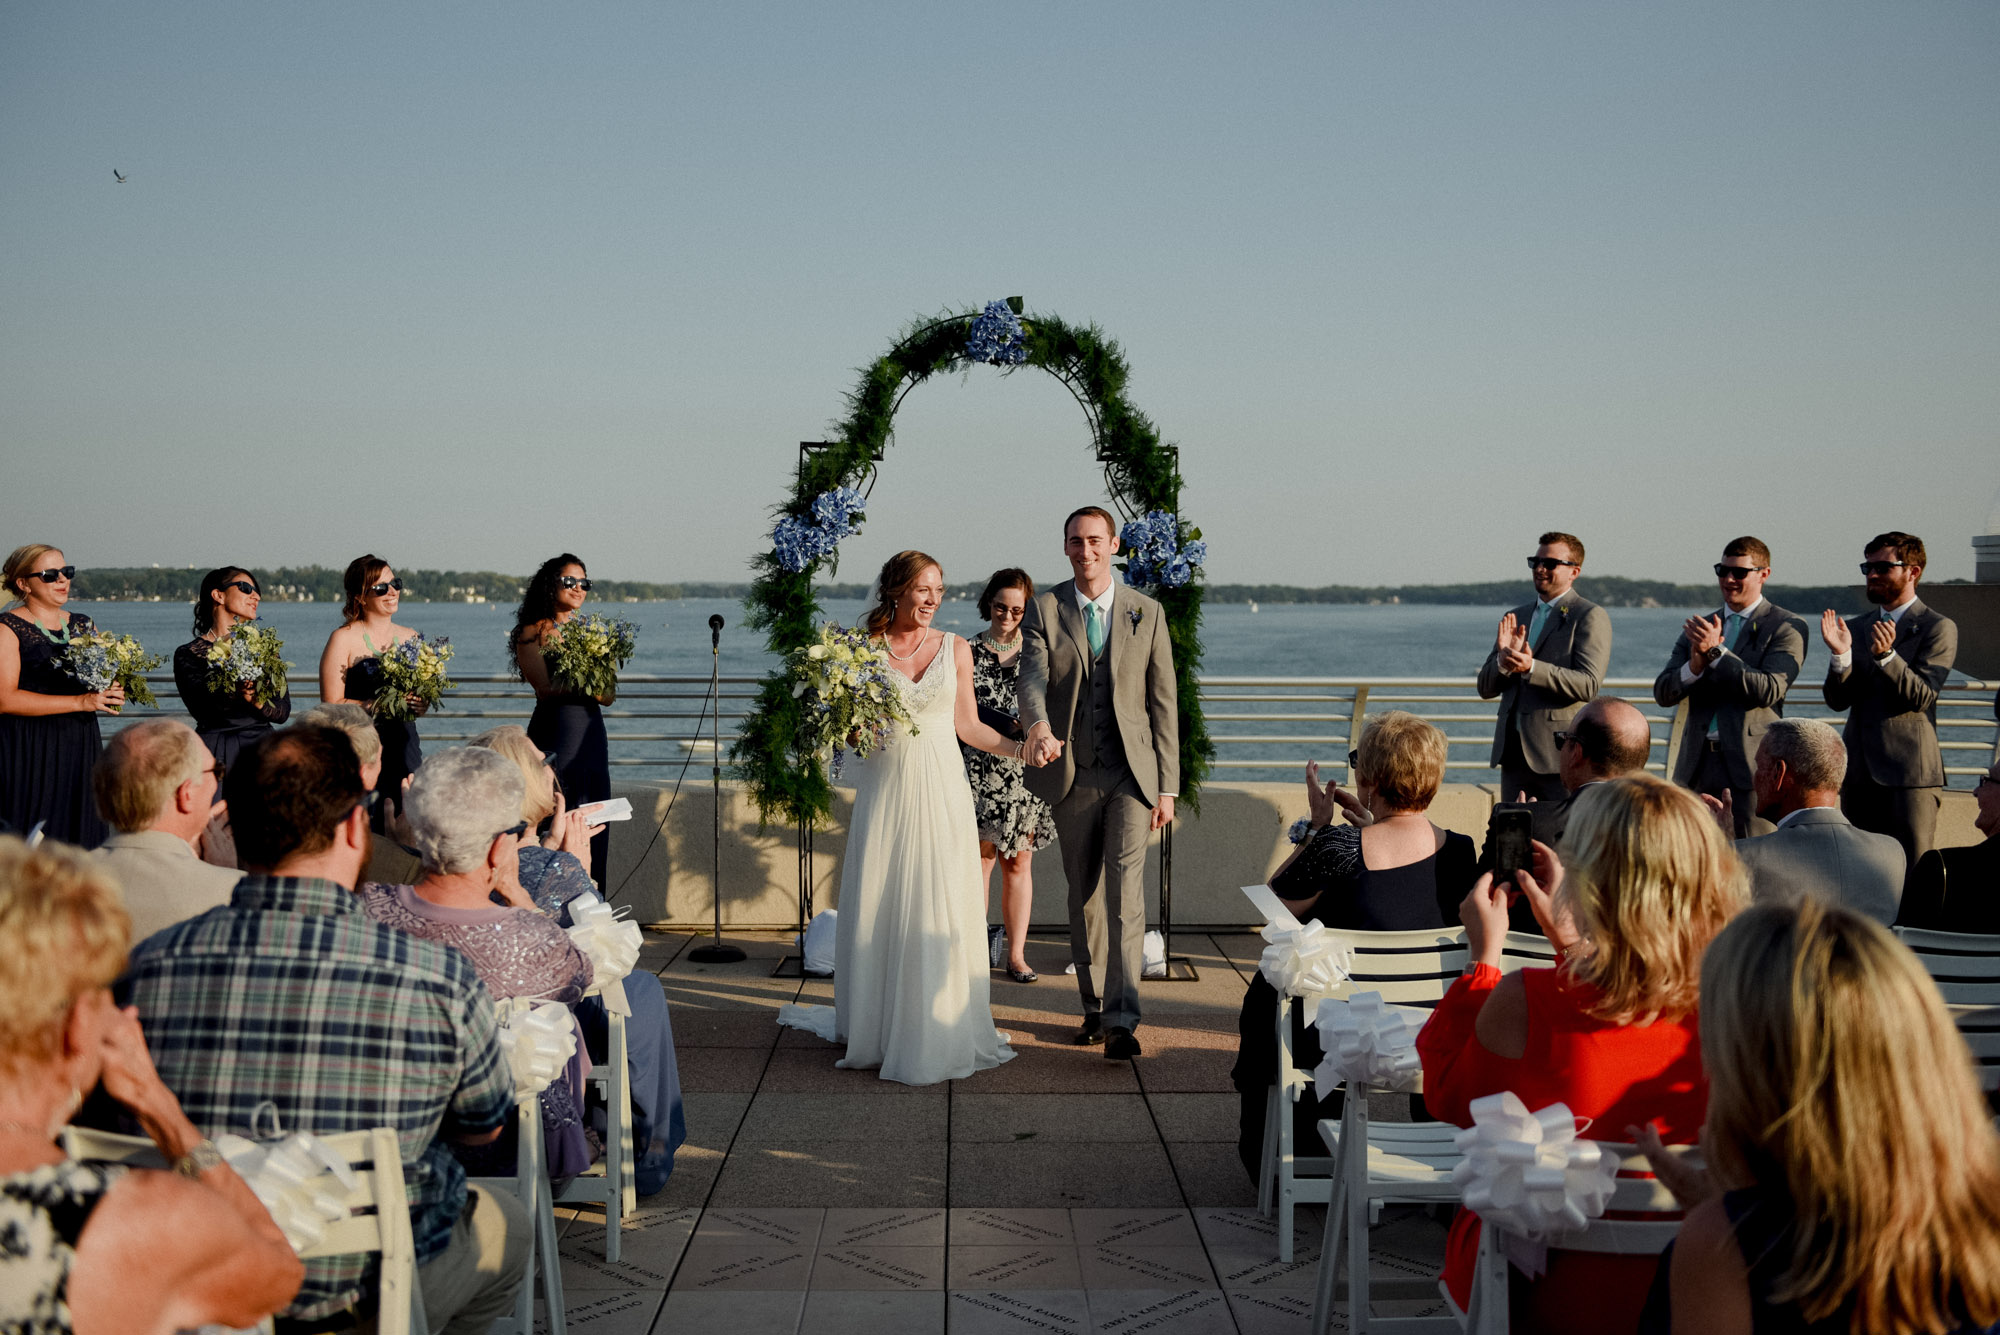 monona terrace rooftop wedding in madison view